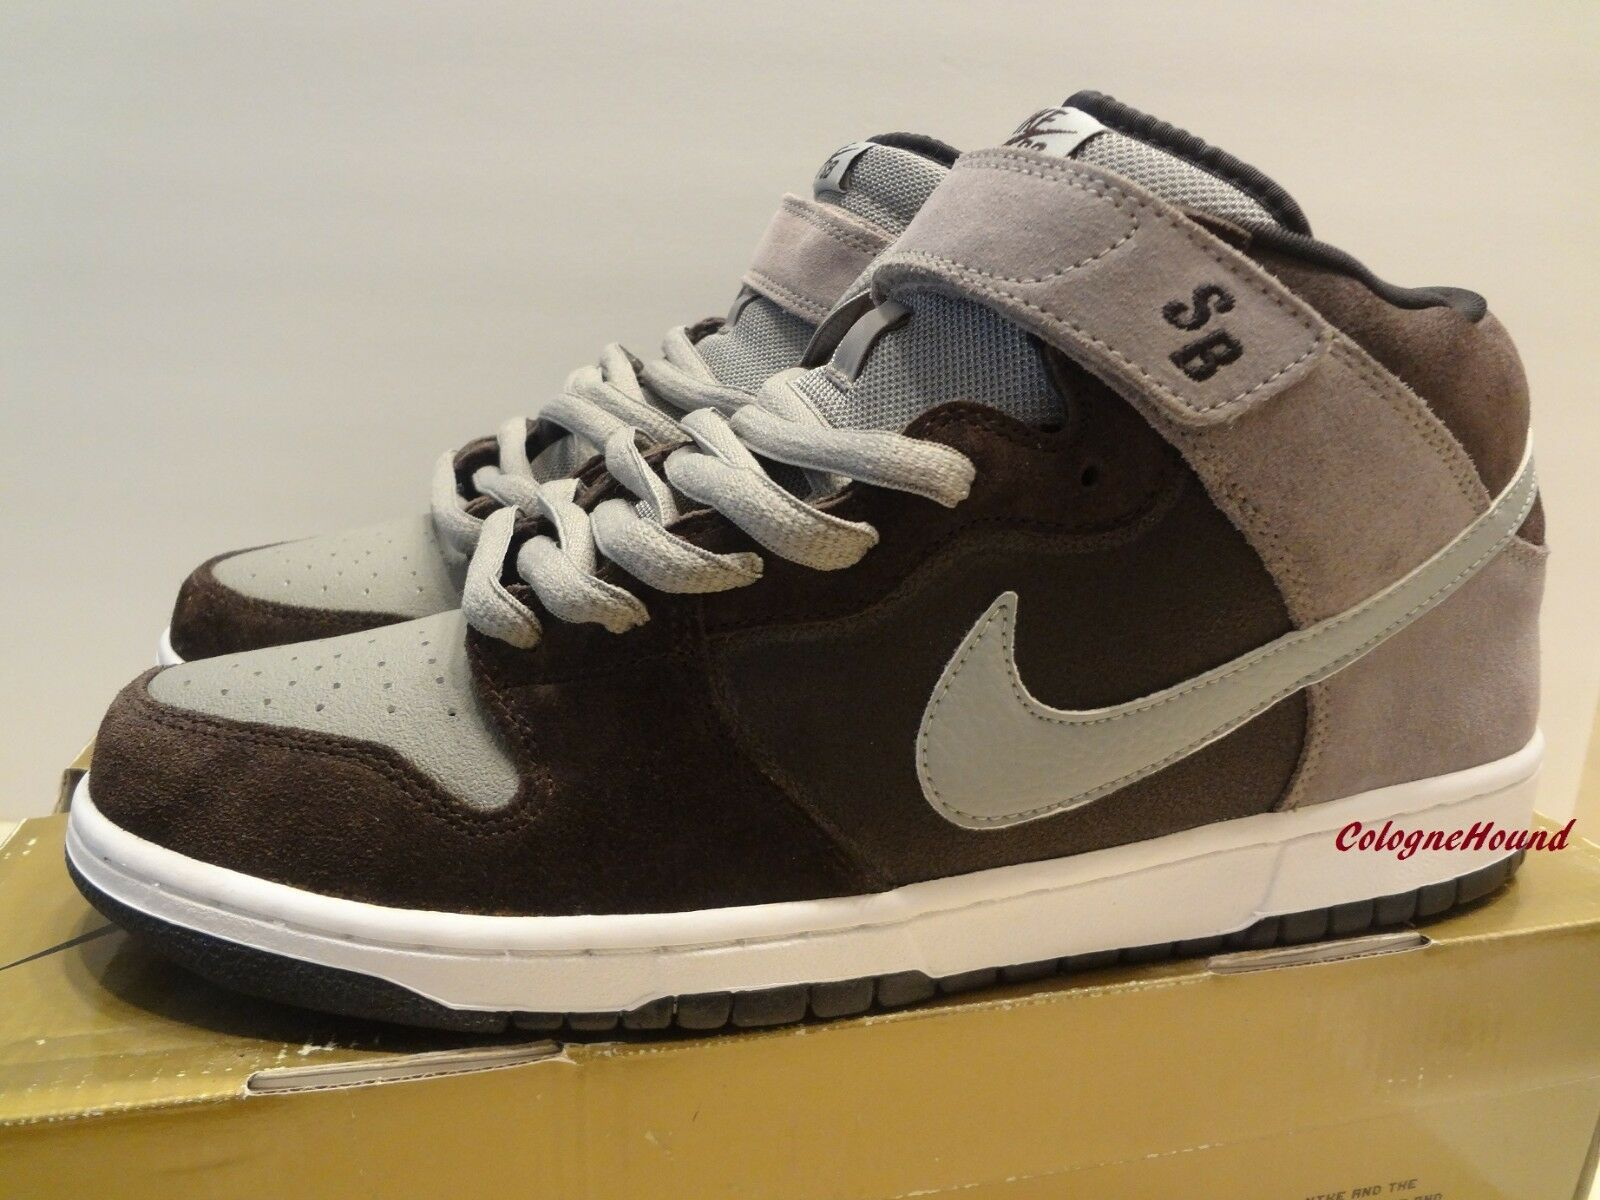 NIKE DUNK MID PRO SB 314383 2018  MEN'S 12 ORIGINAL BOX New shoes for men and women, limited time discount